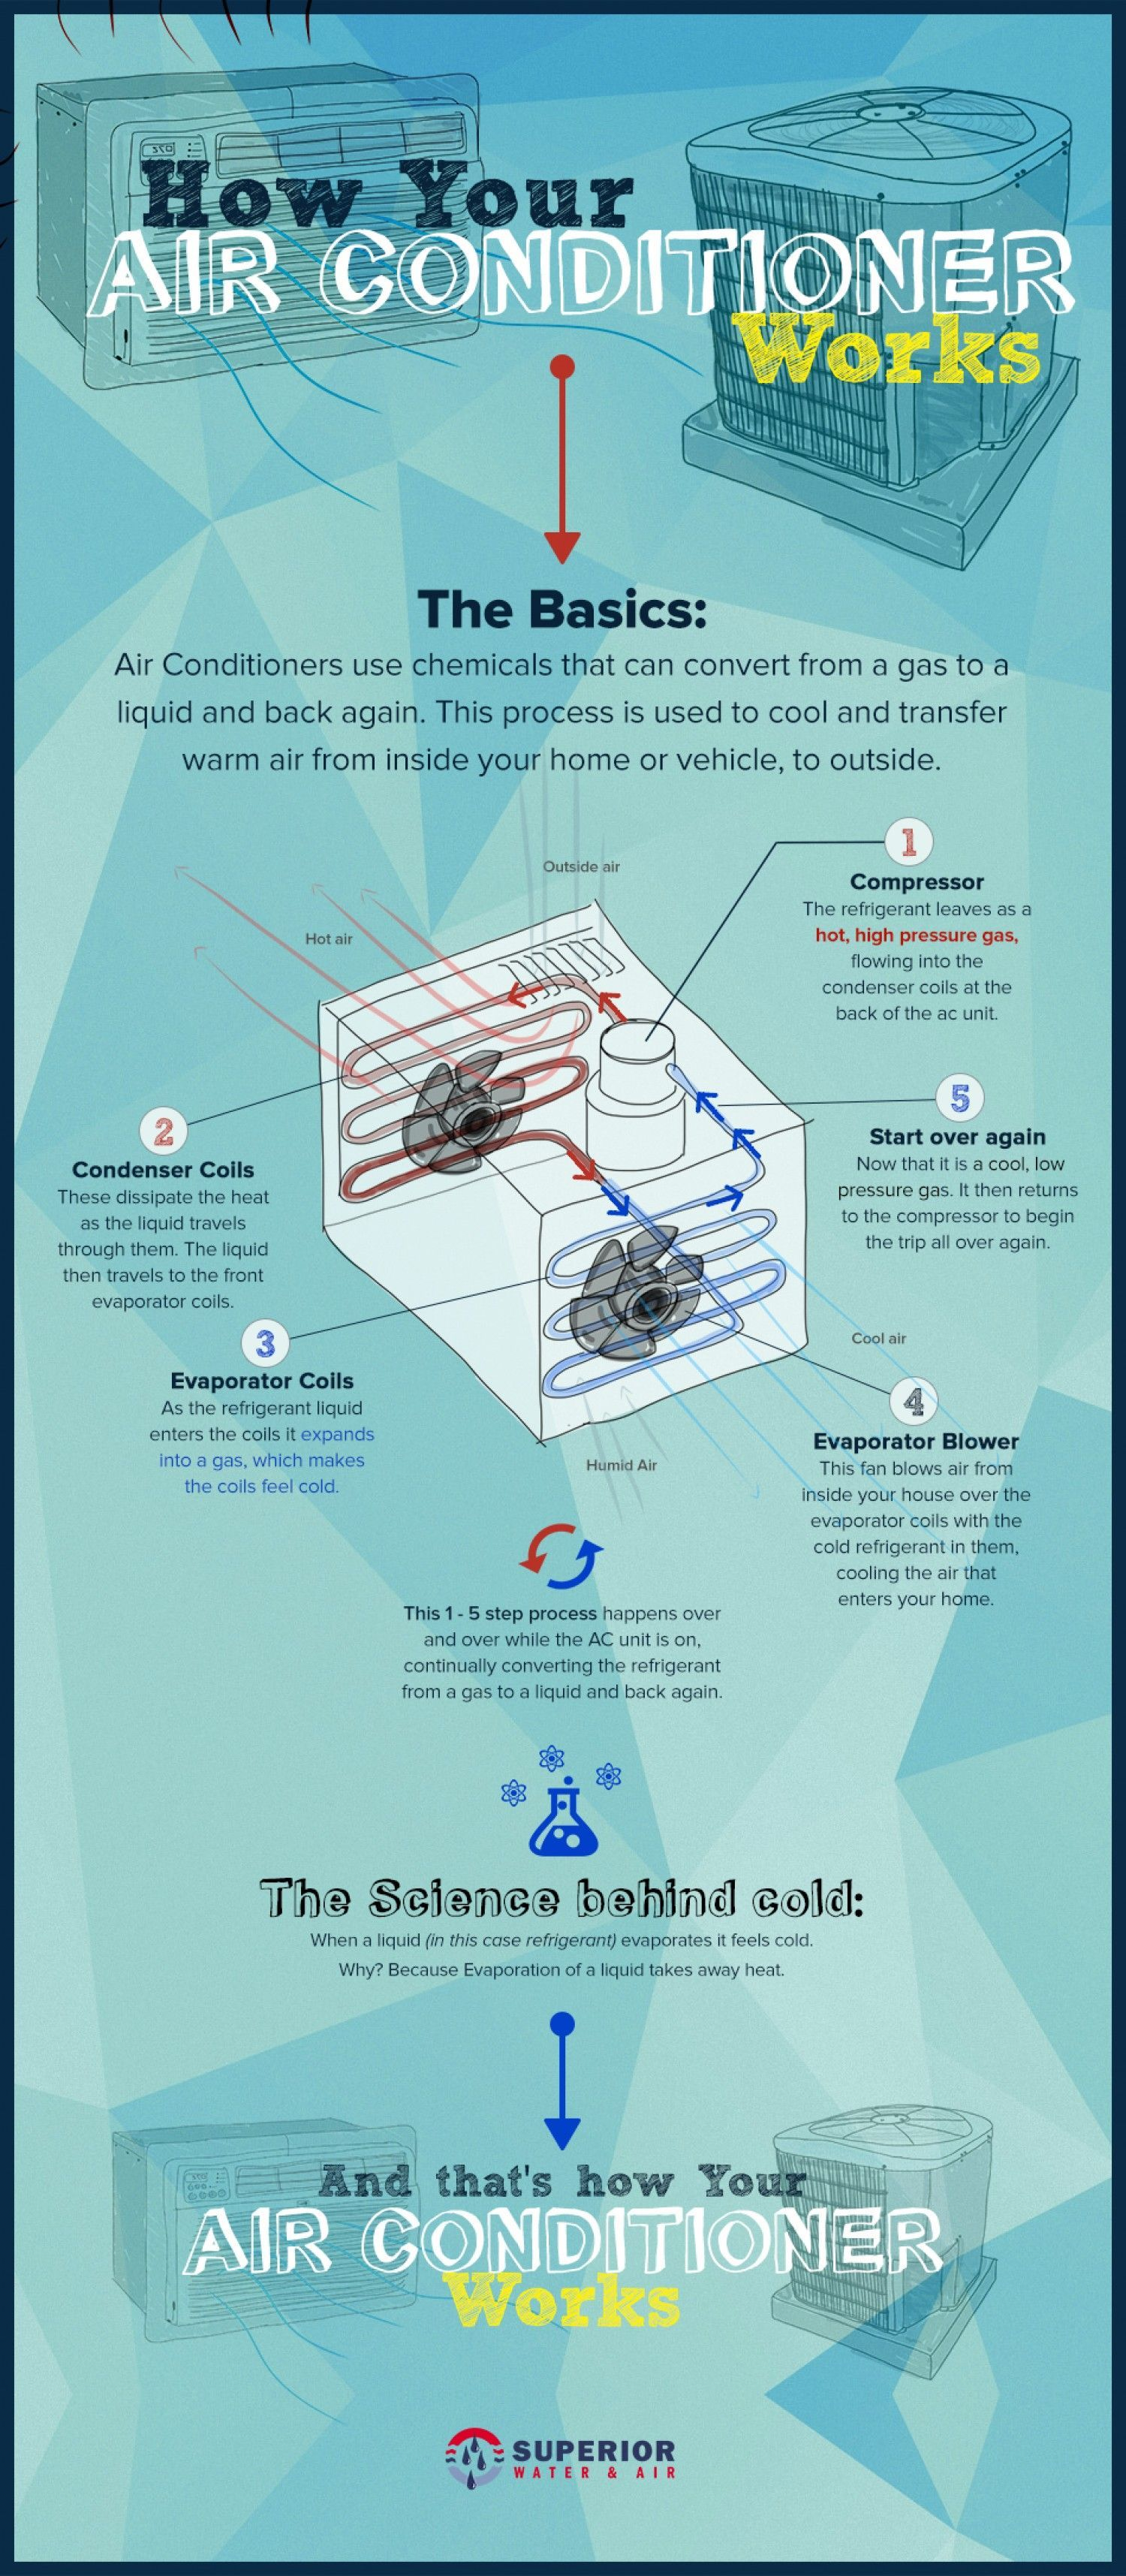 How Your Air Conditioner Works Air conditioner works